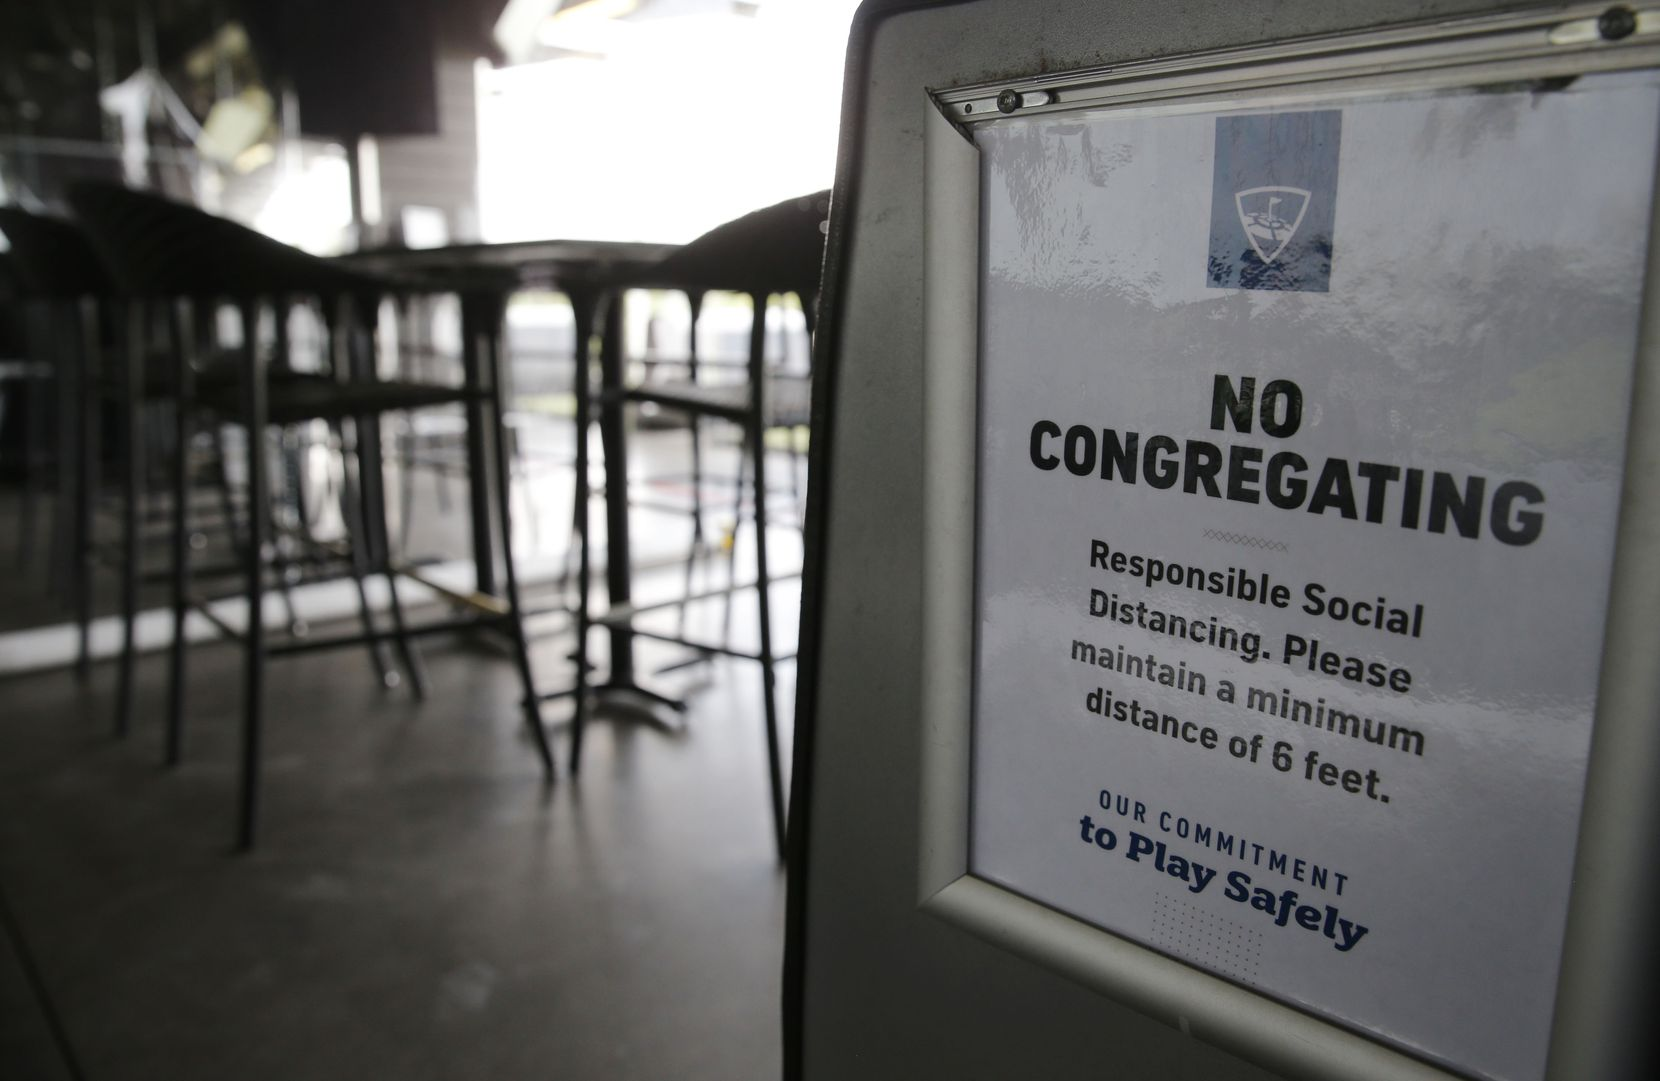 A sign is displayed encouraging social distancing at Topgolf in The Colony, on Friday, May 22, 2020.